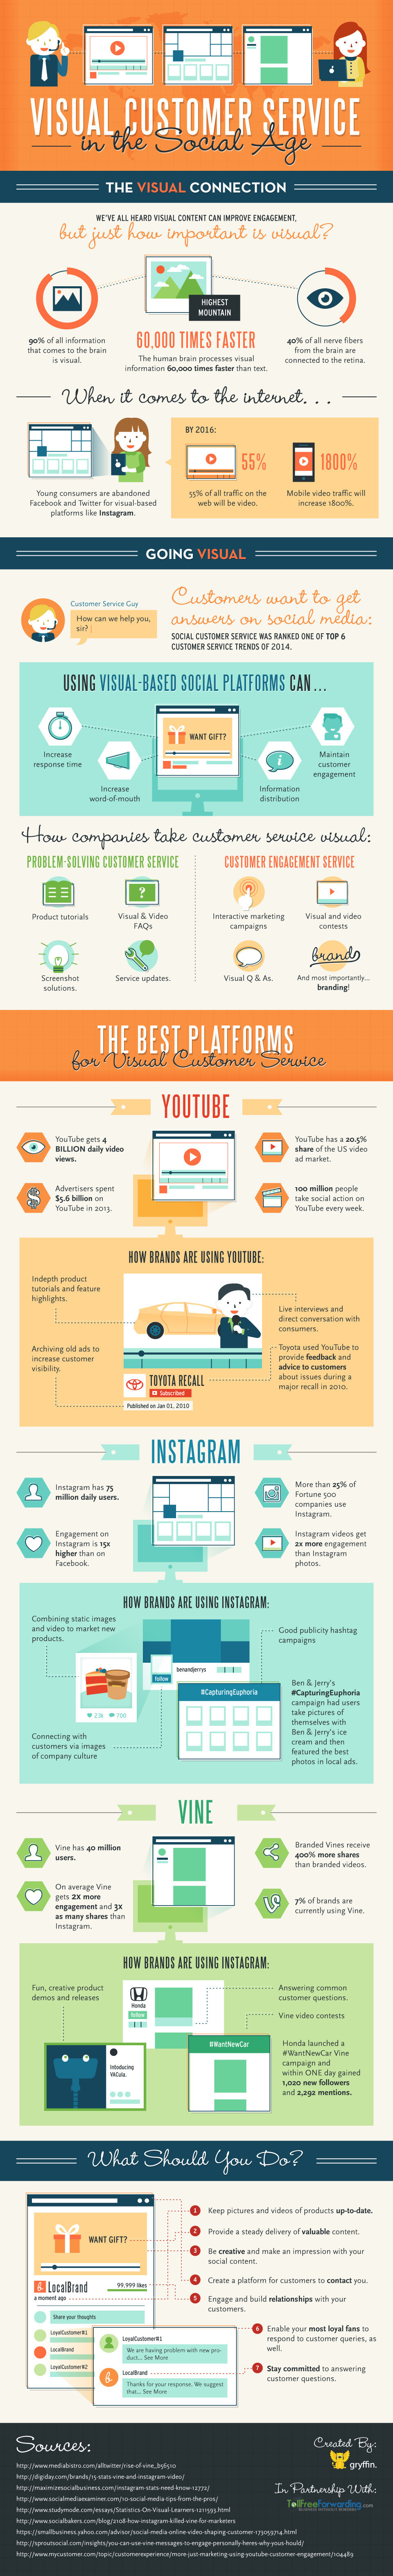 Infographic: Visual Customer Service in the Social Age